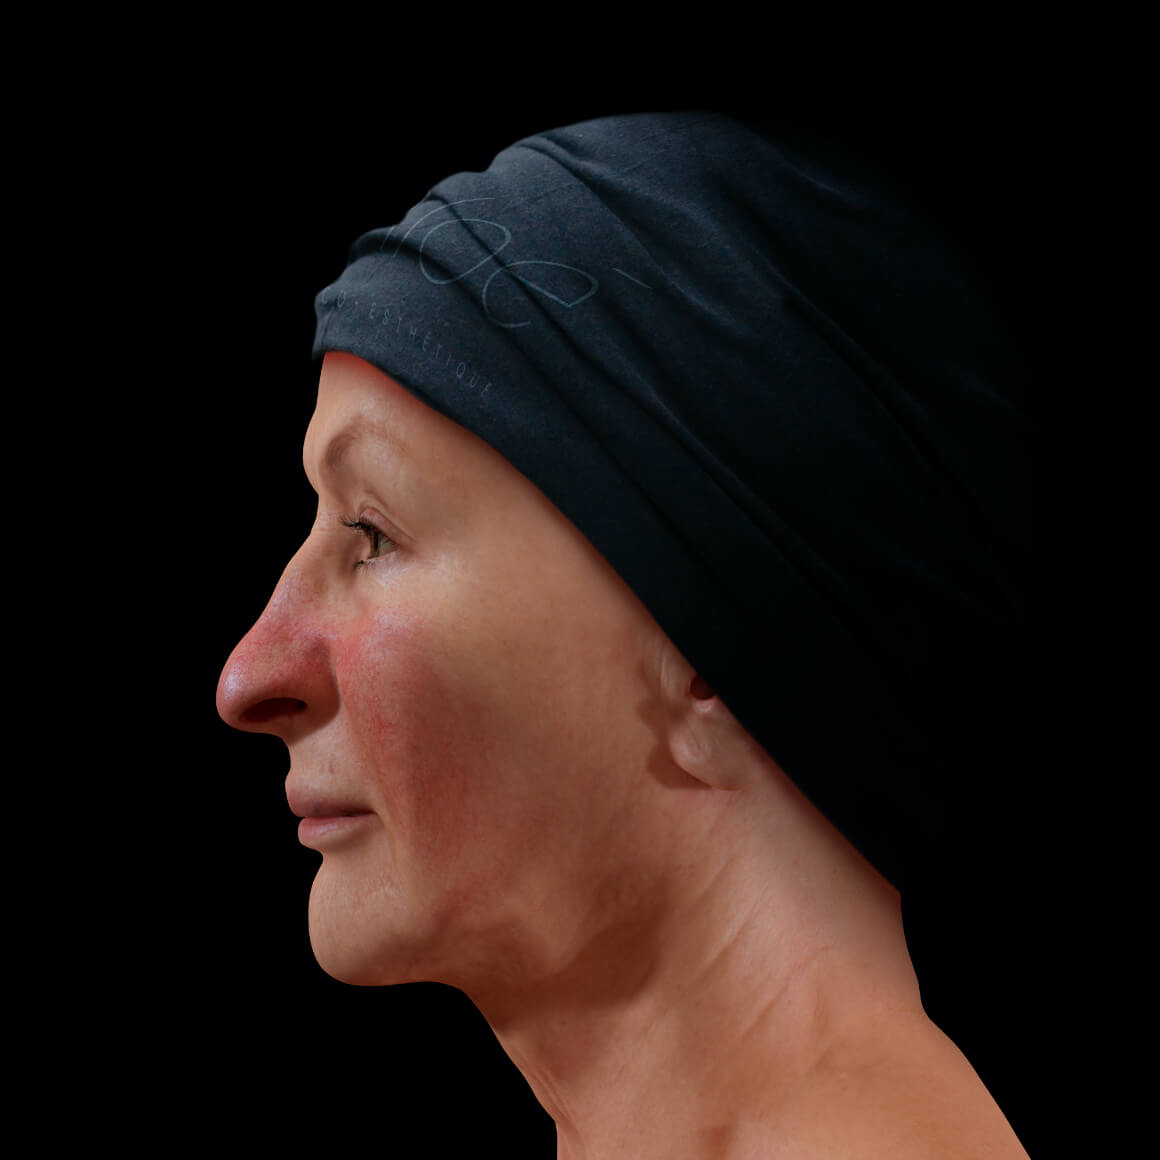 A female Clinique Chloé patient positioned sideways showing rosacea on her nose and cheeks